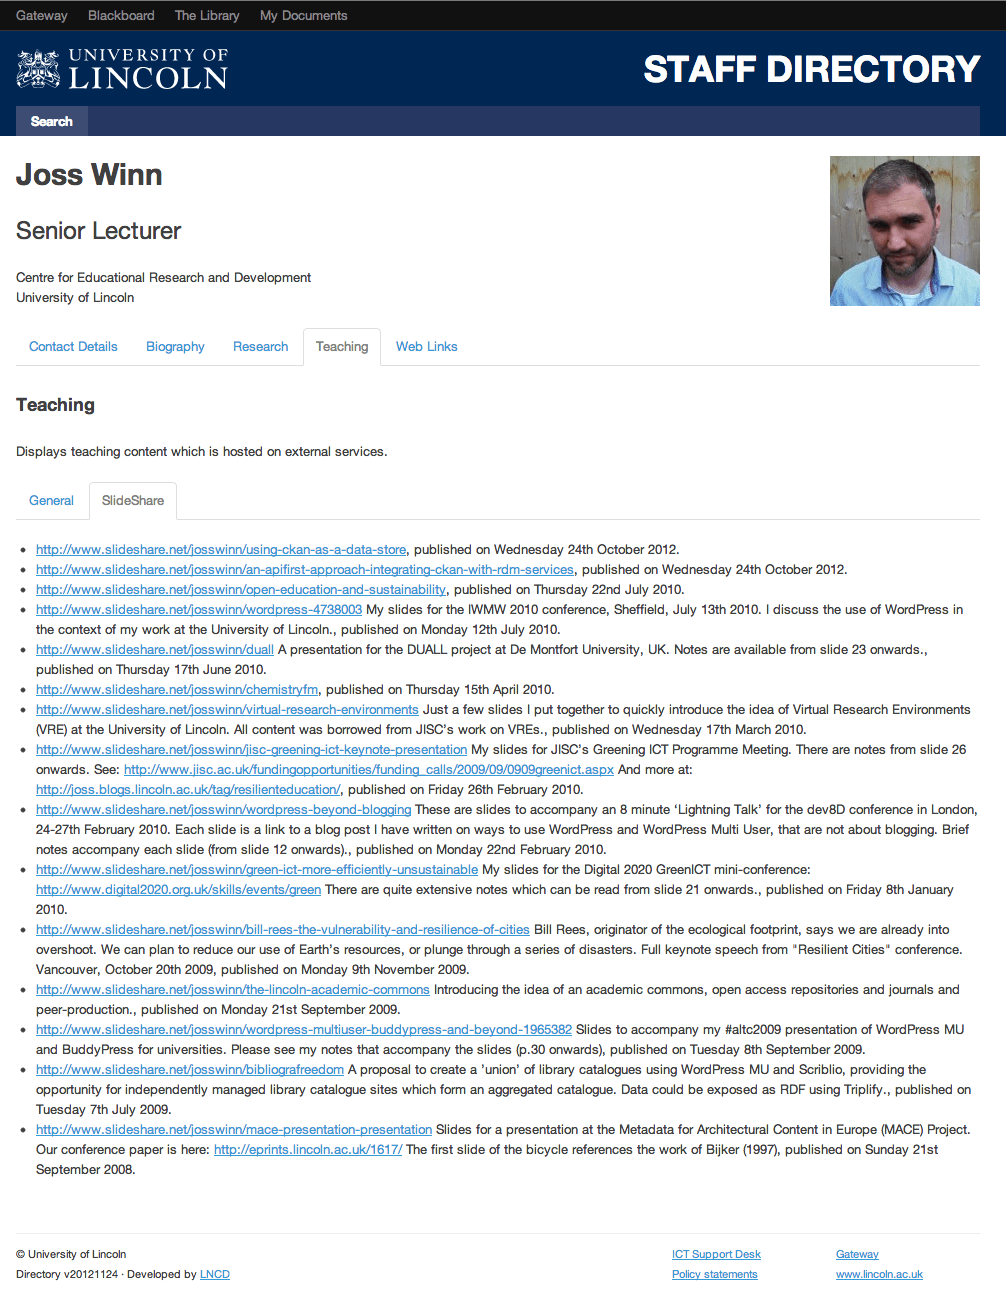 Staff profile, showing Slideshare resources